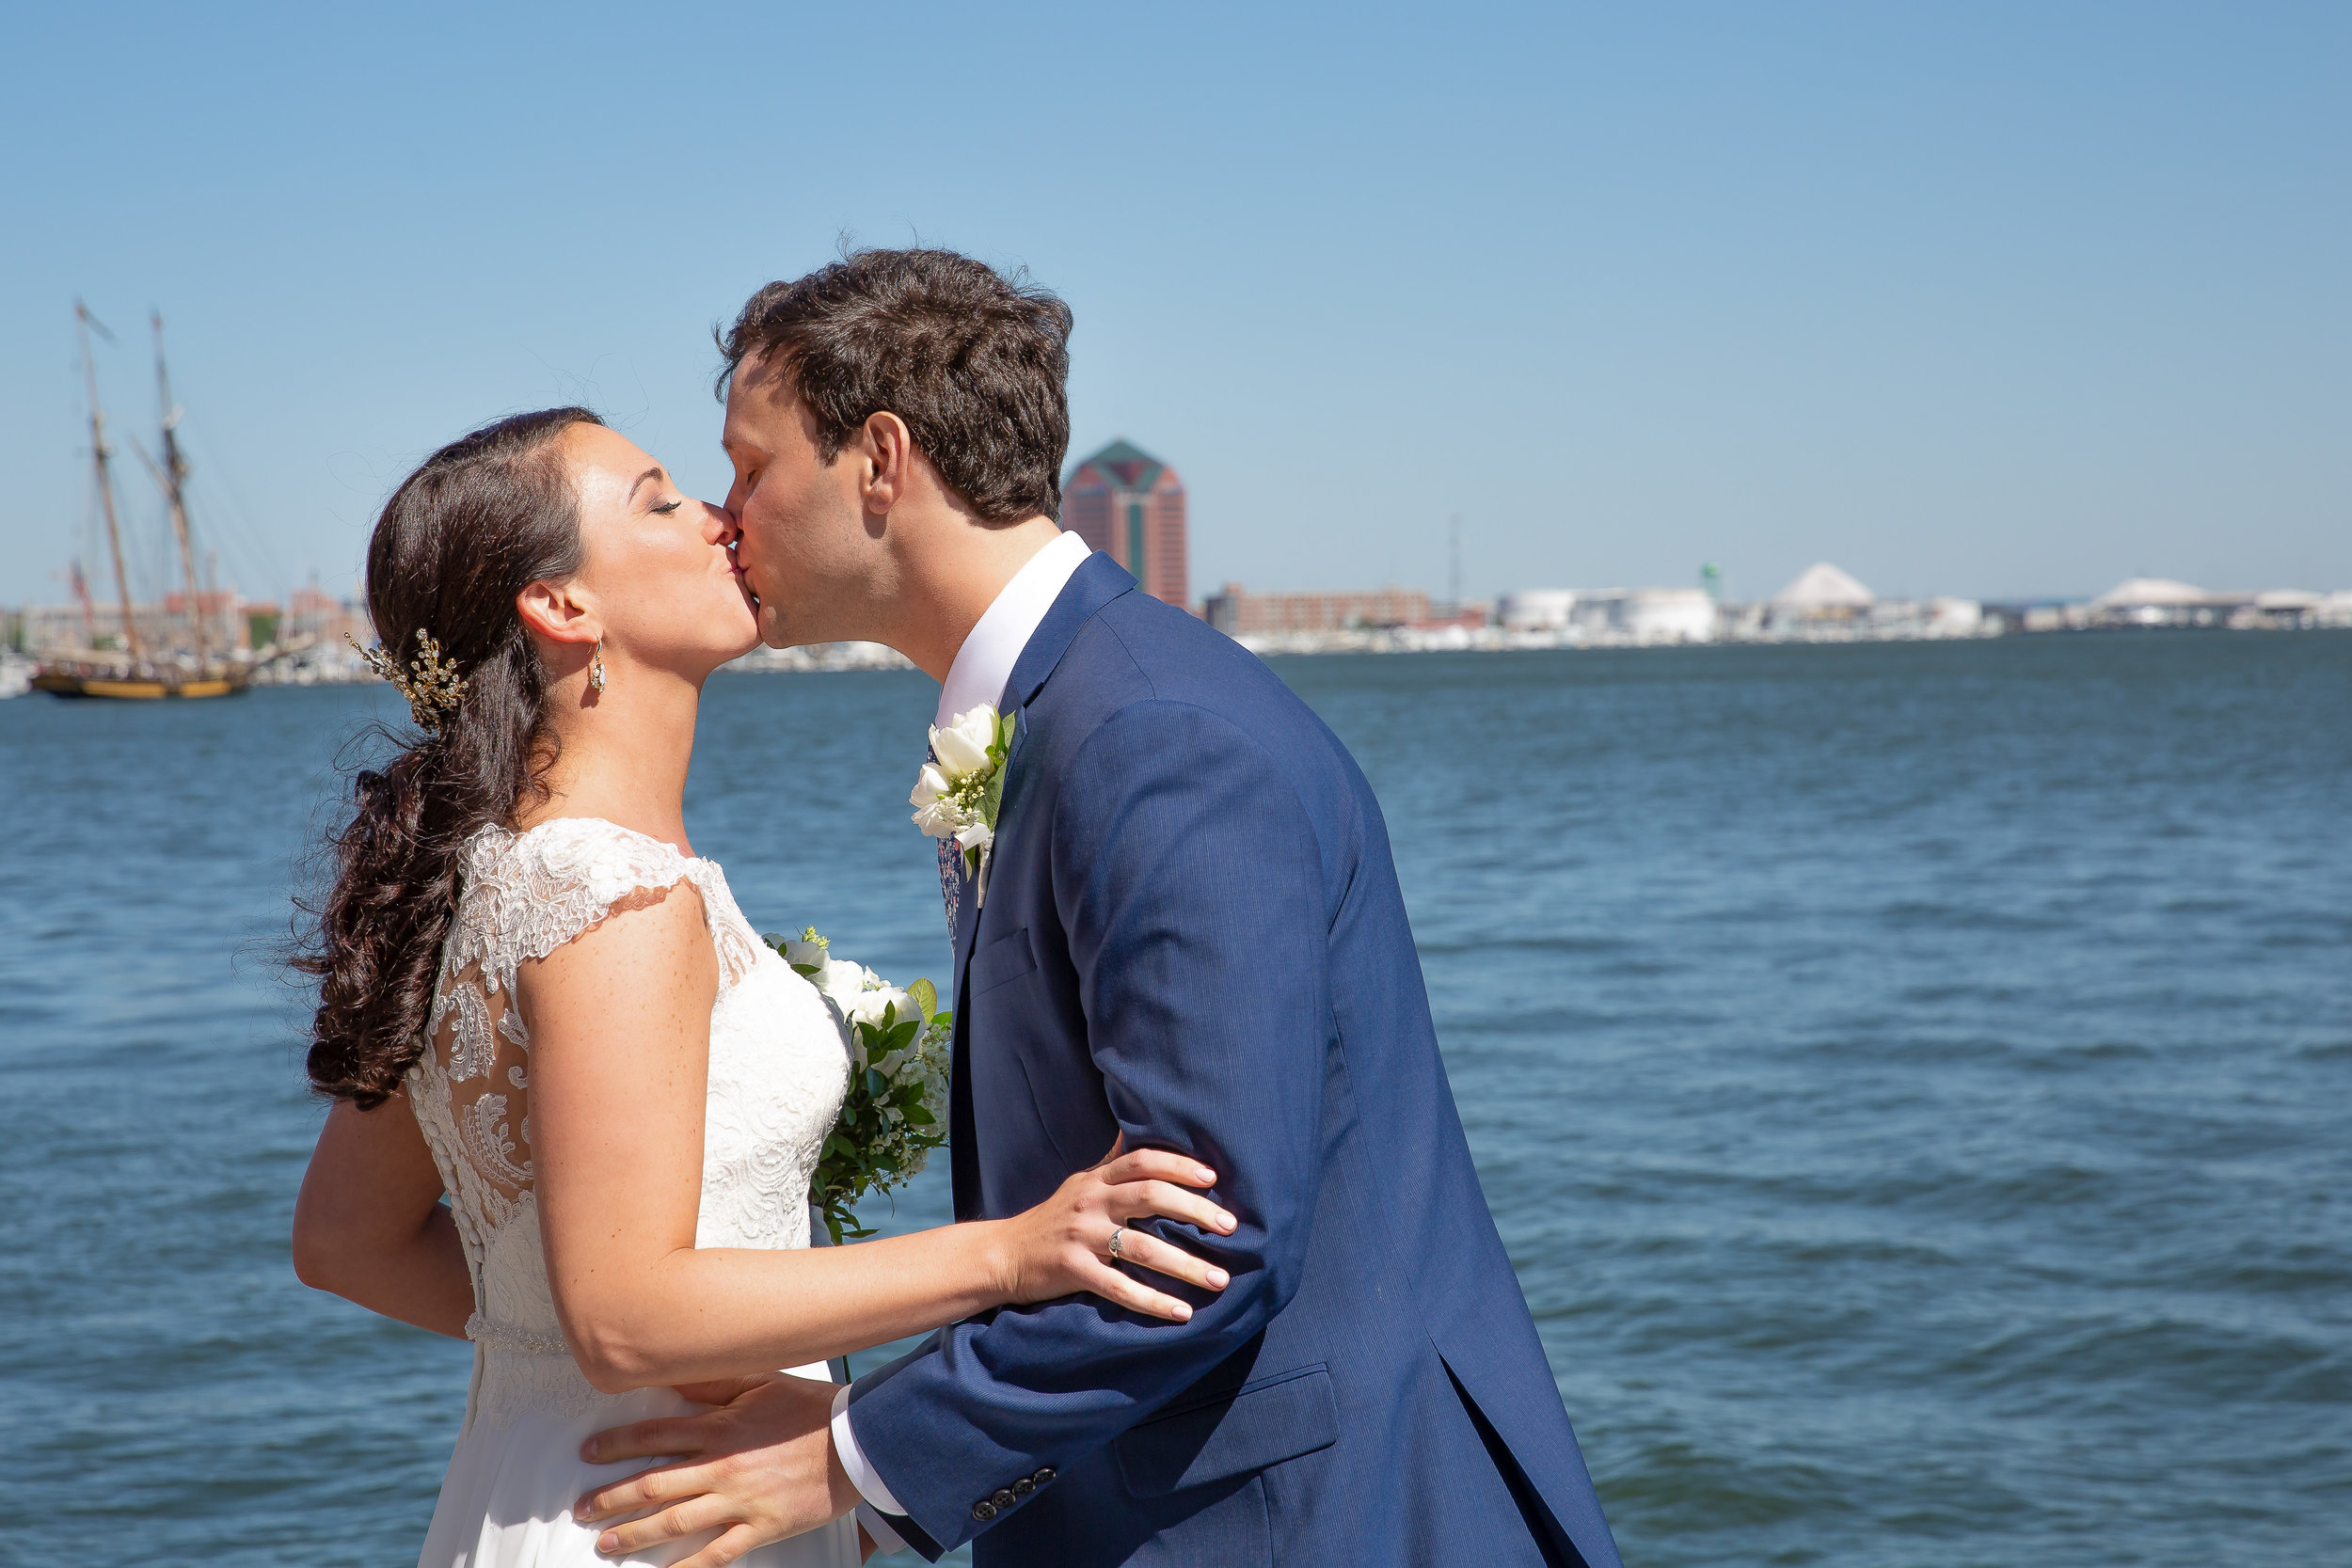 A Kiss by the Harbor